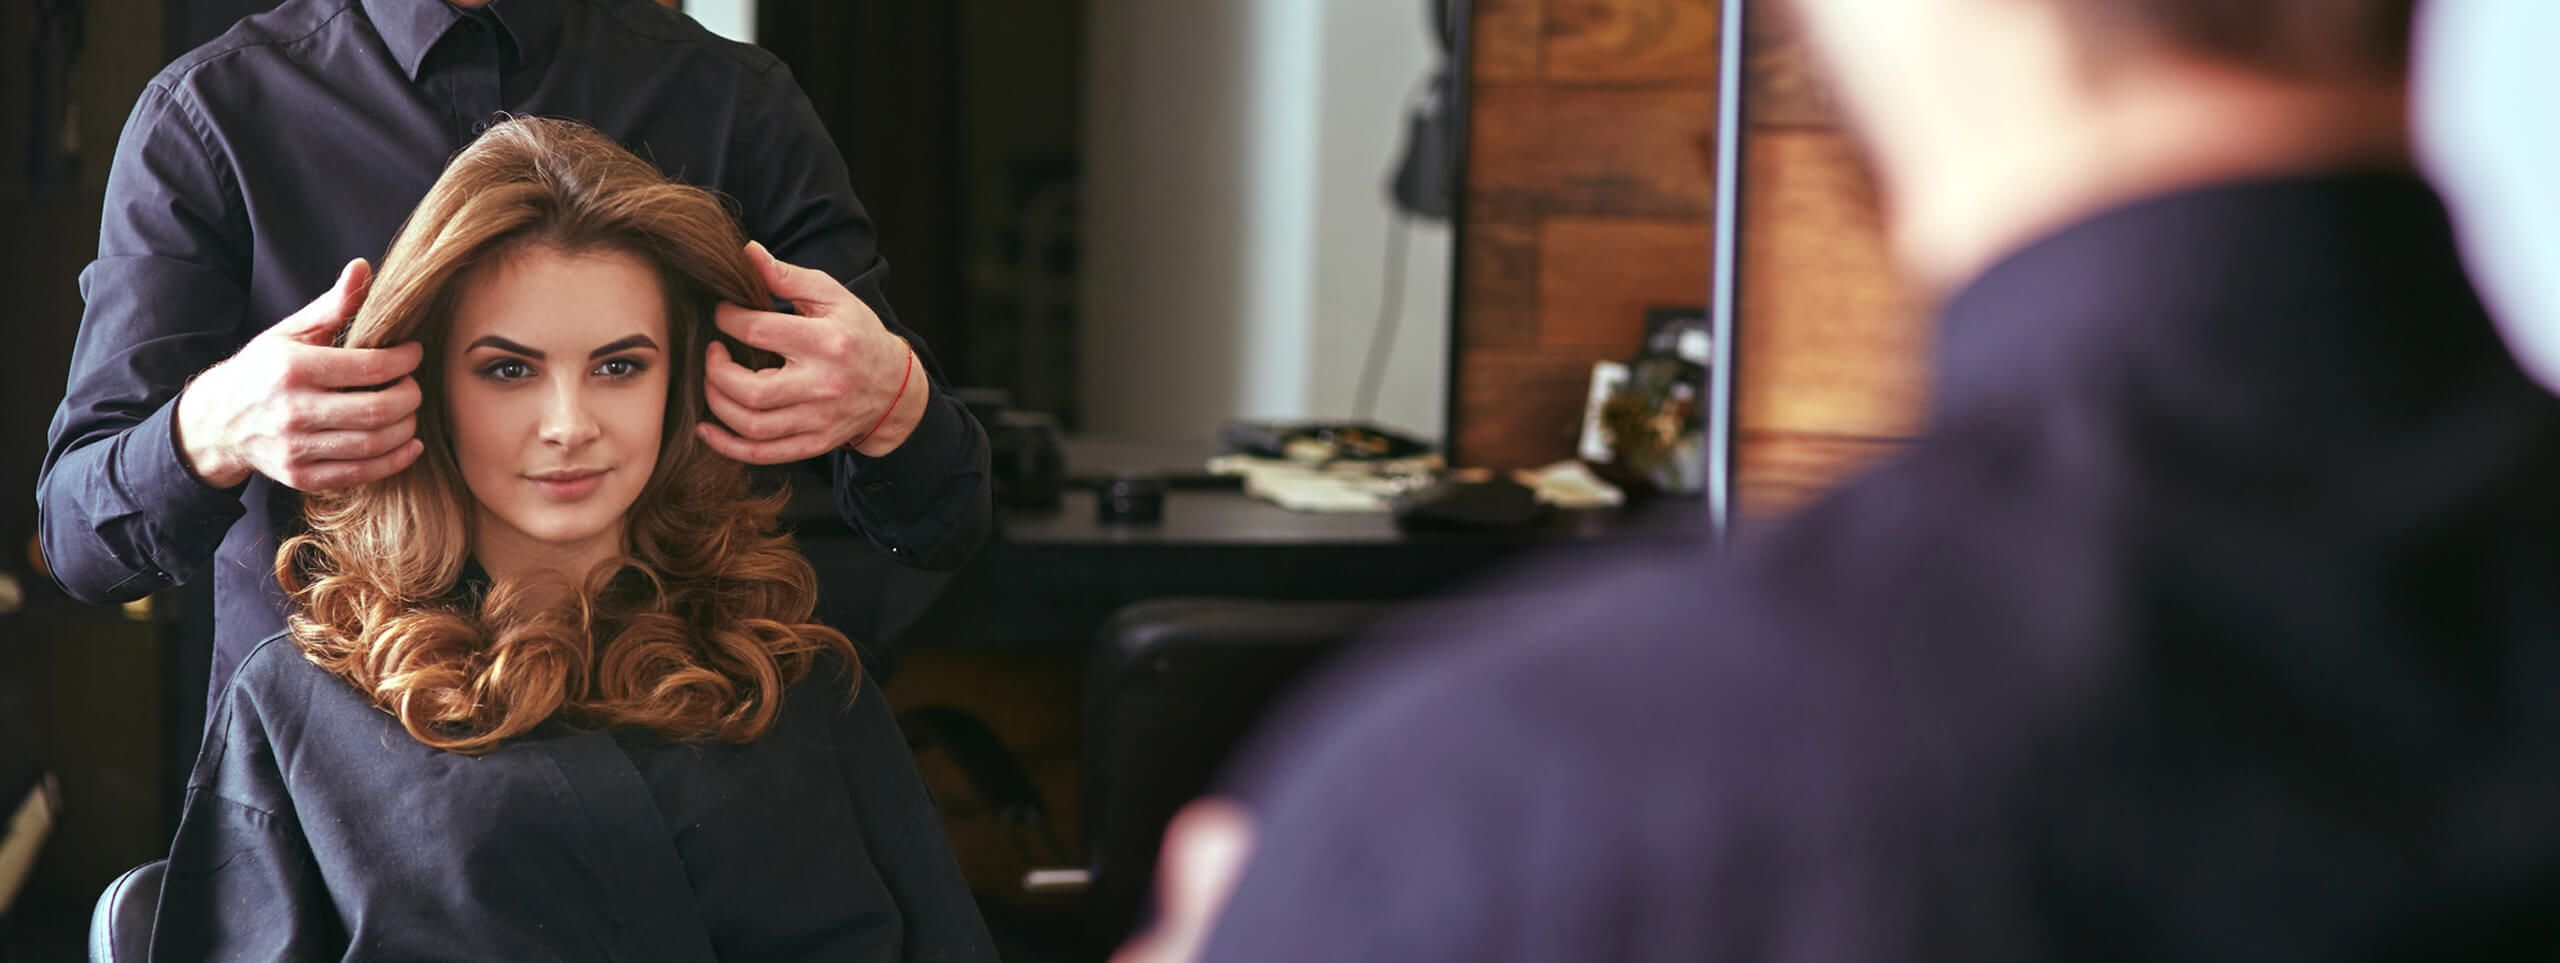 Woman visiting hair salon for new trendy hairstyle